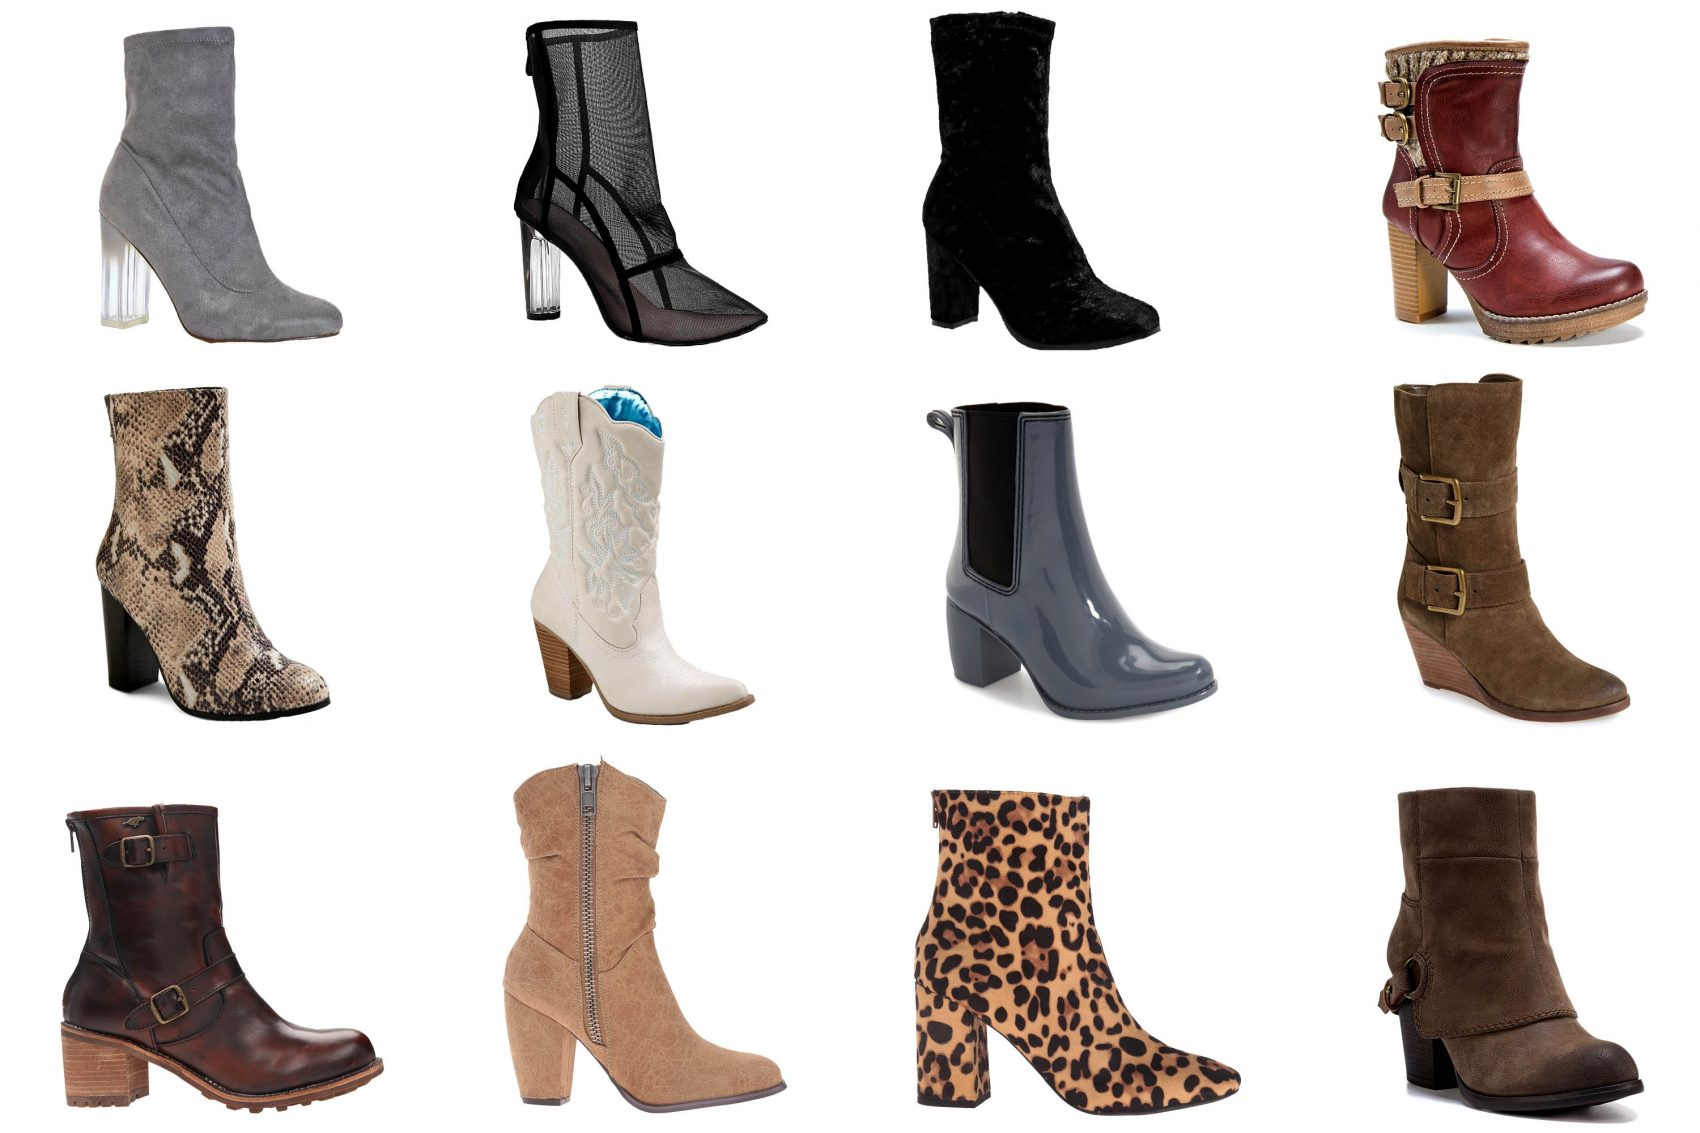 Tall Mid Calf Ankle Boots: Fall 2016 Budget-Friendly Affordable Boot Trends